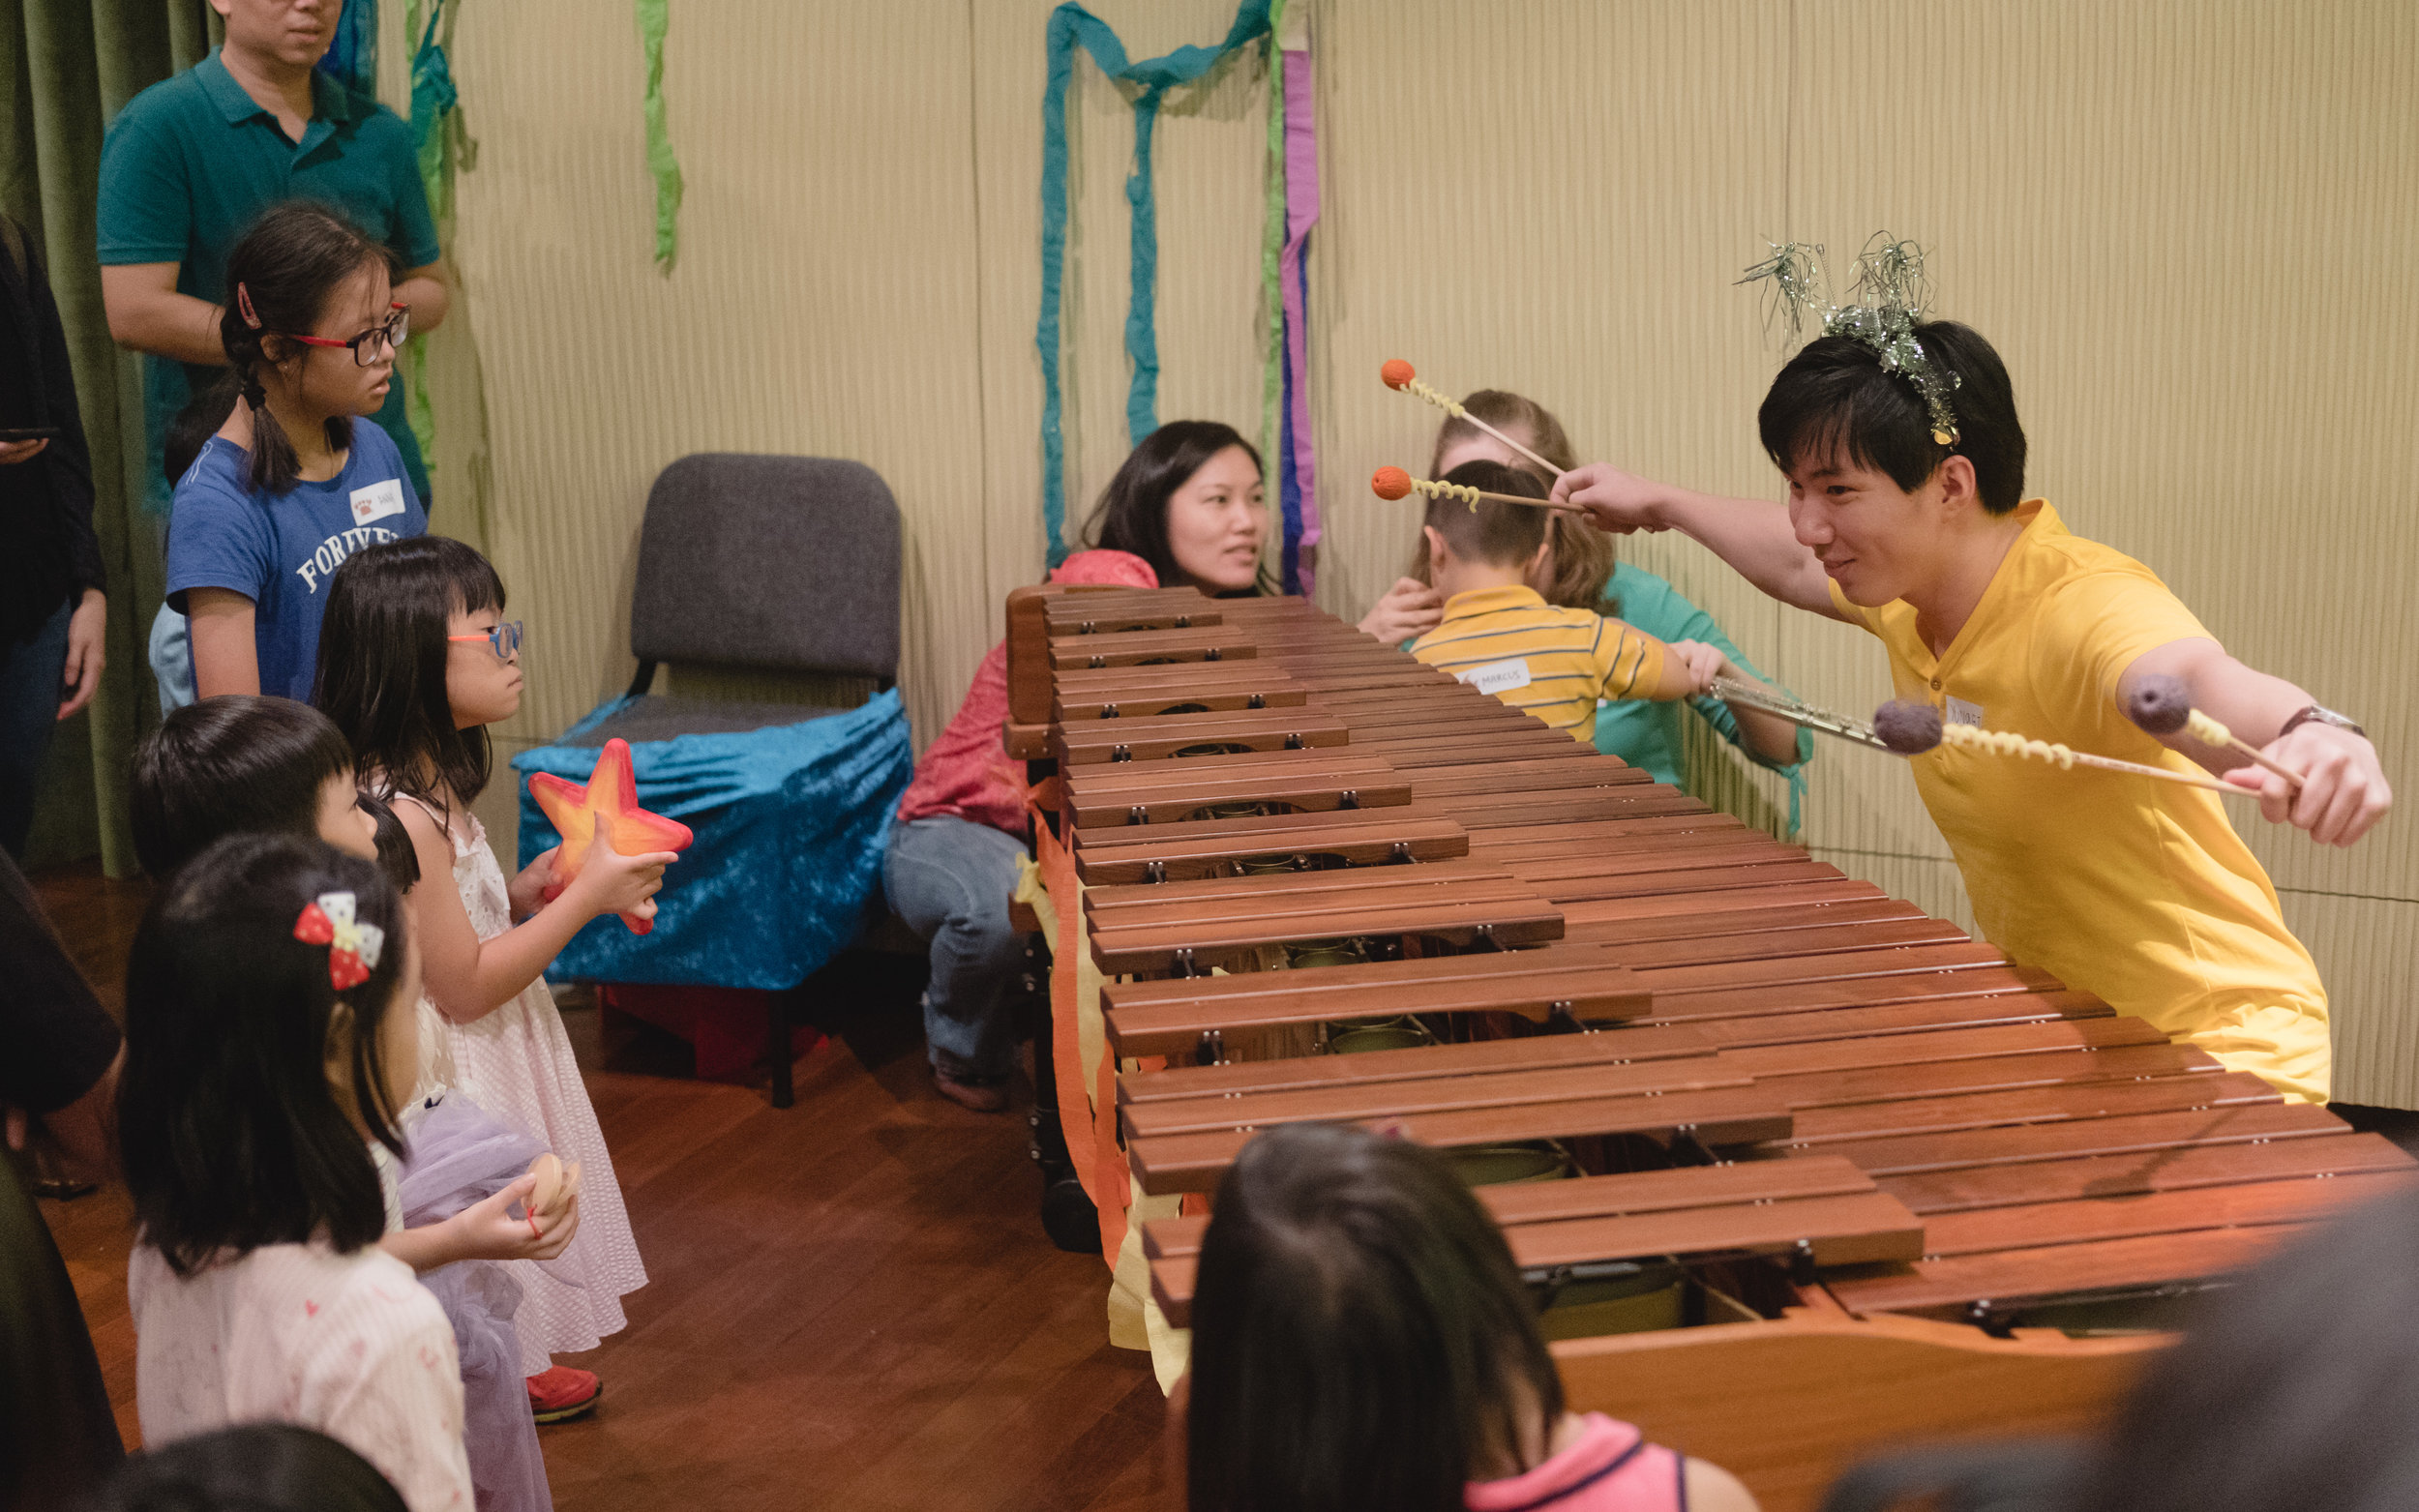 Participants were led through an underwater adventure, making friends with sea creature characters who each had an associated musical instrument, played by our students.